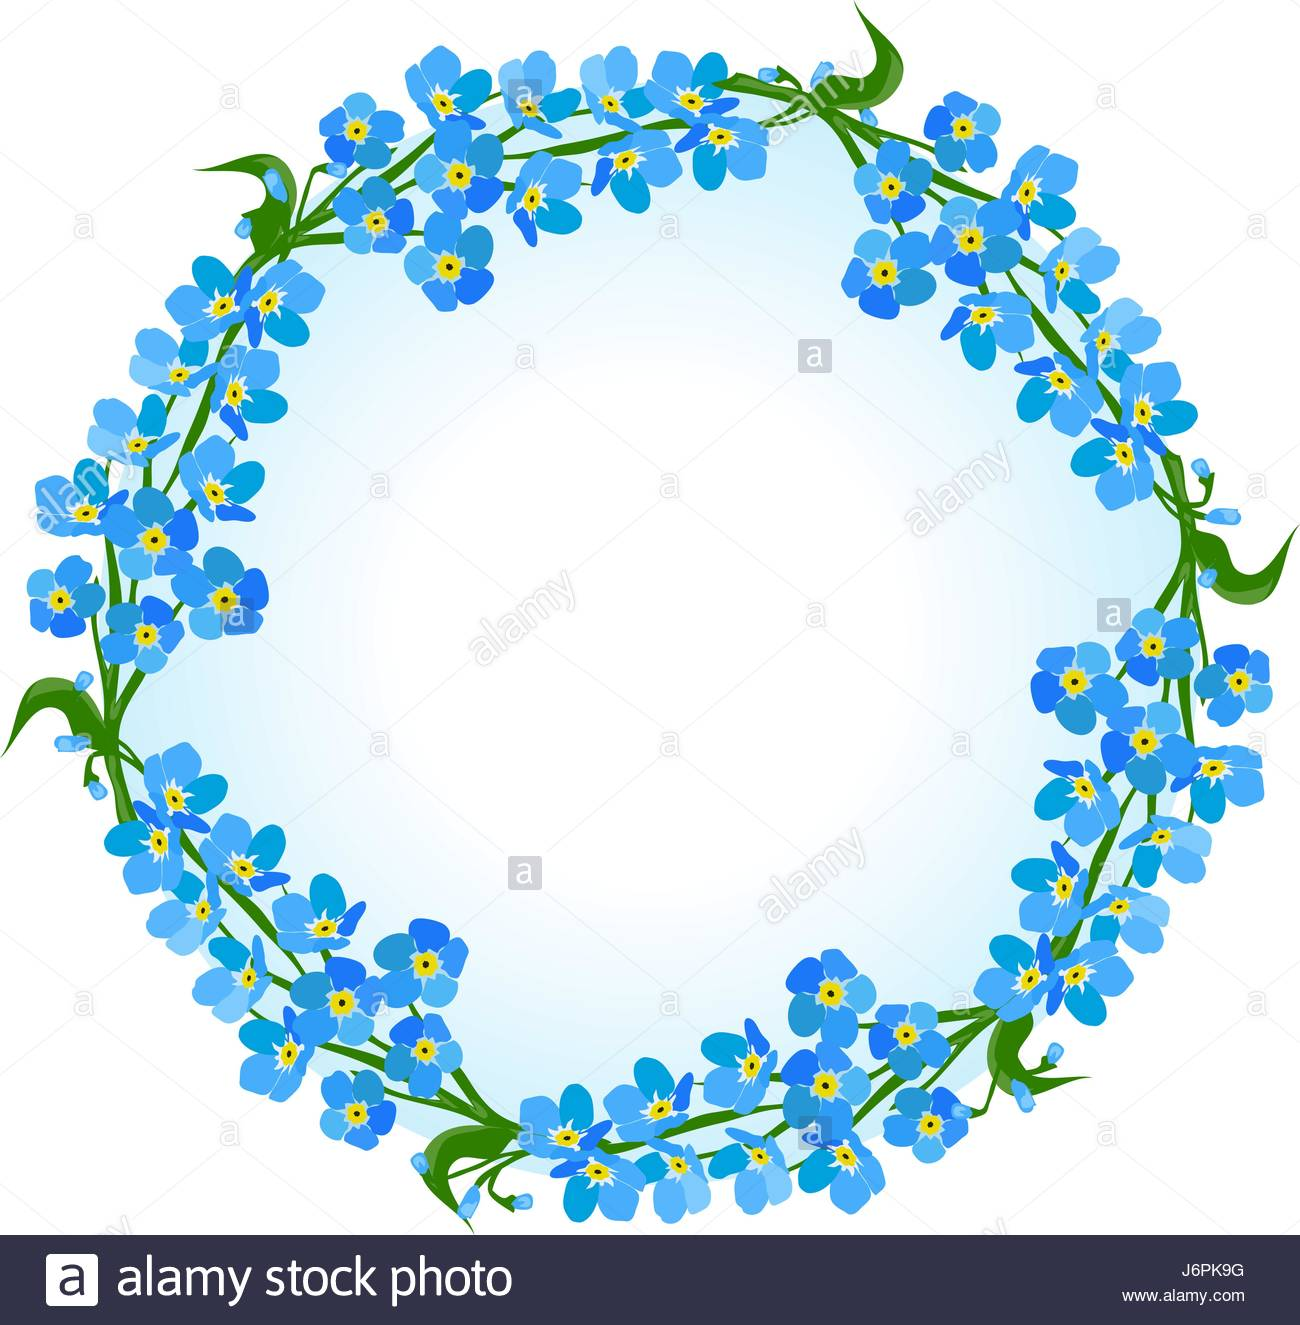 1300x1325 Vector Illustration Of A Forget Me Not Floral Frame Stock Vector